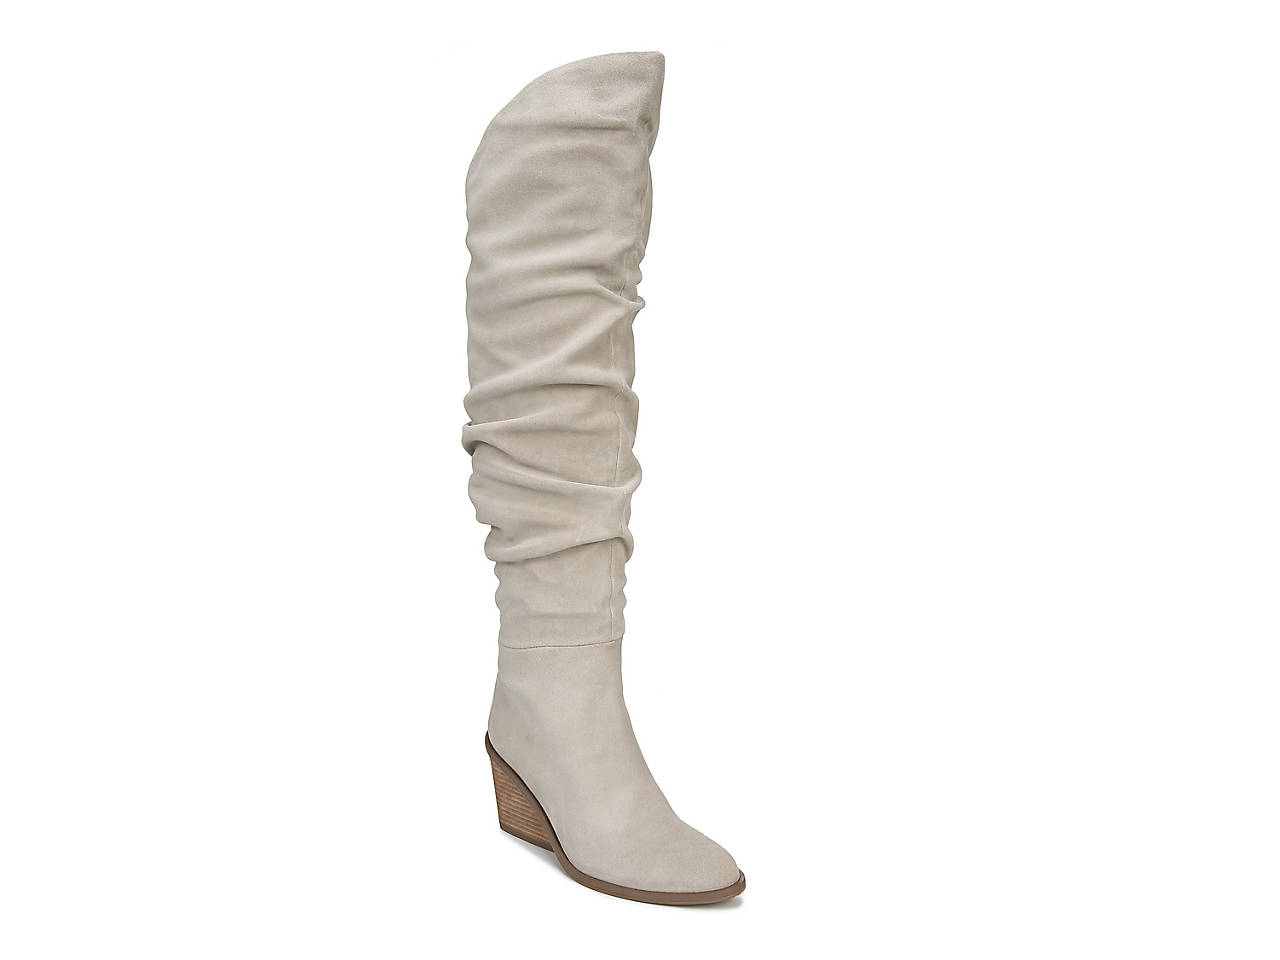 c9531407b73 Dr. Scholl s Message Wedge Boot Women s Shoes